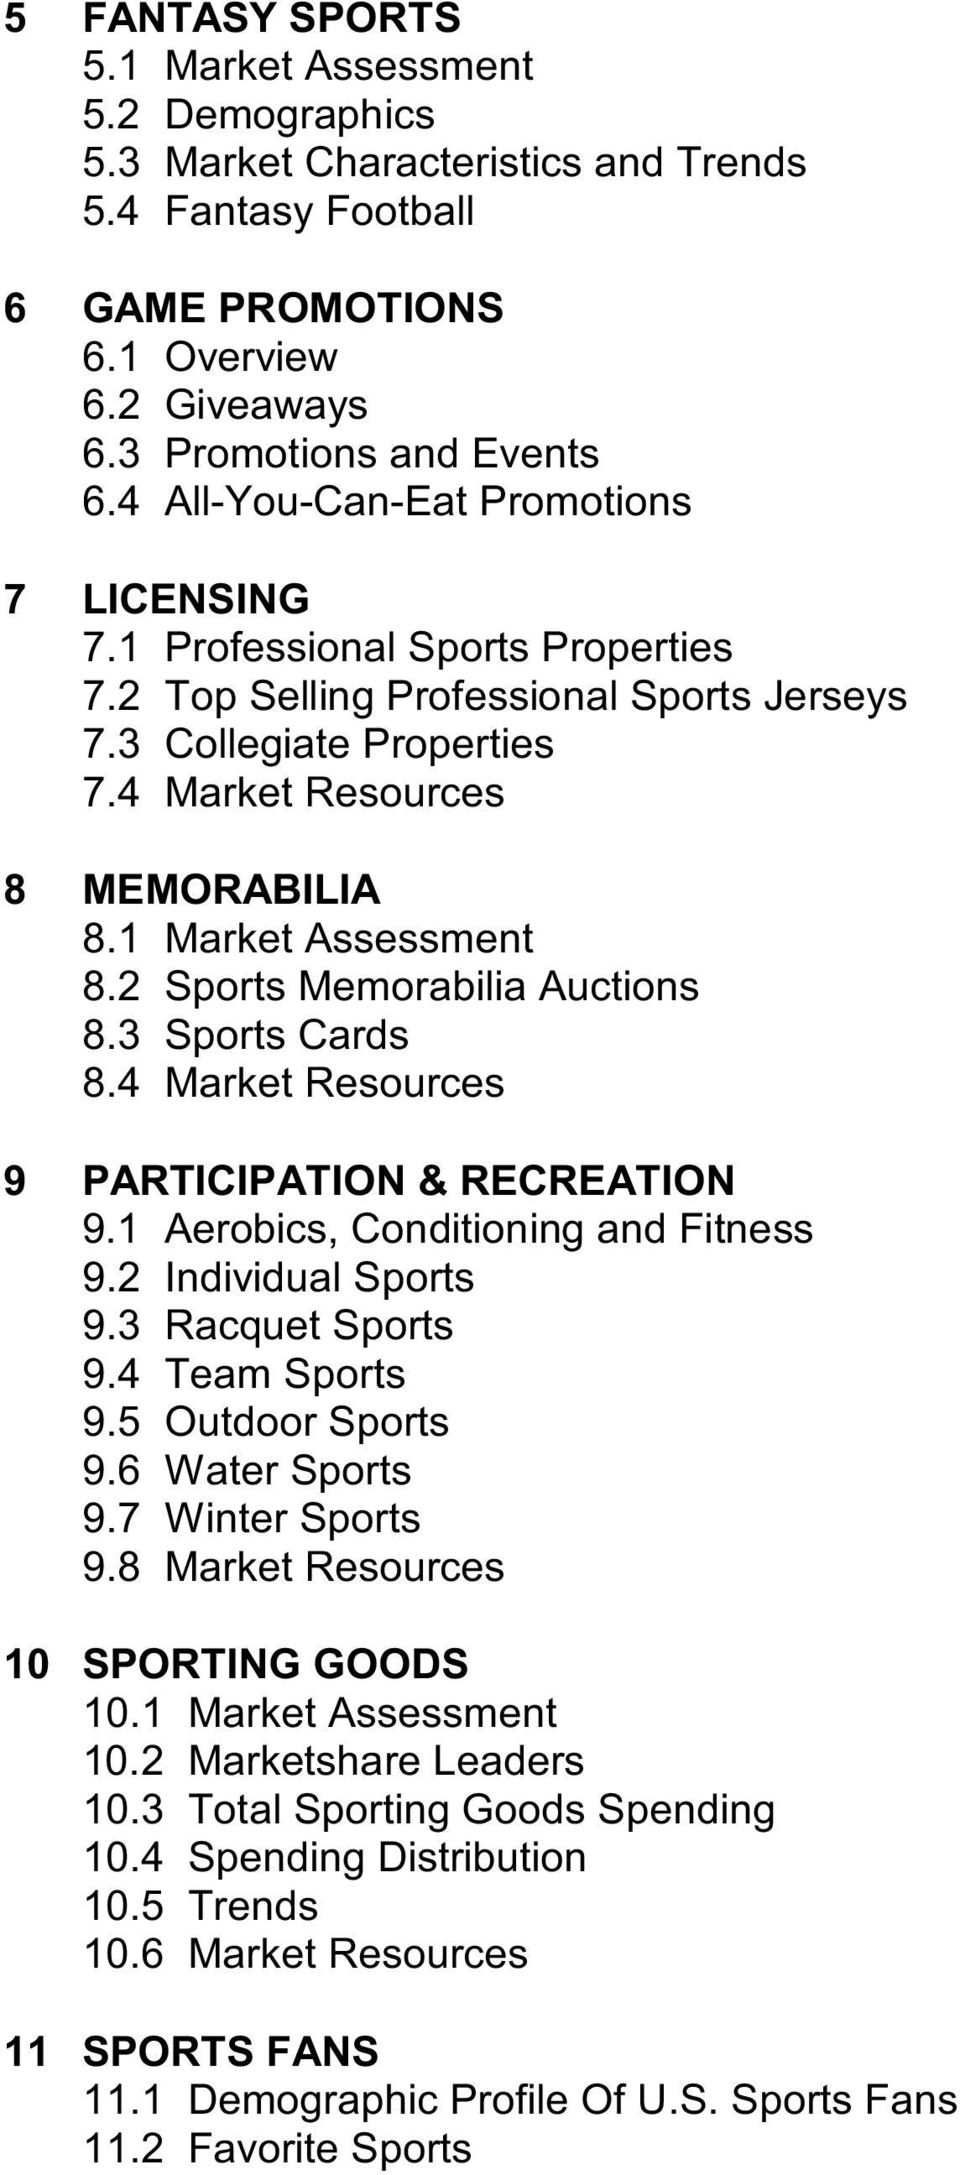 1 Market Assessment 8.2 Sports Memorabilia Auctions 8.3 Sports Cards 8.4 Market Resources 9 PARTICIPATION & RECREATION 9.1 Aerobics, Conditioning and Fitness 9.2 Individual Sports 9.